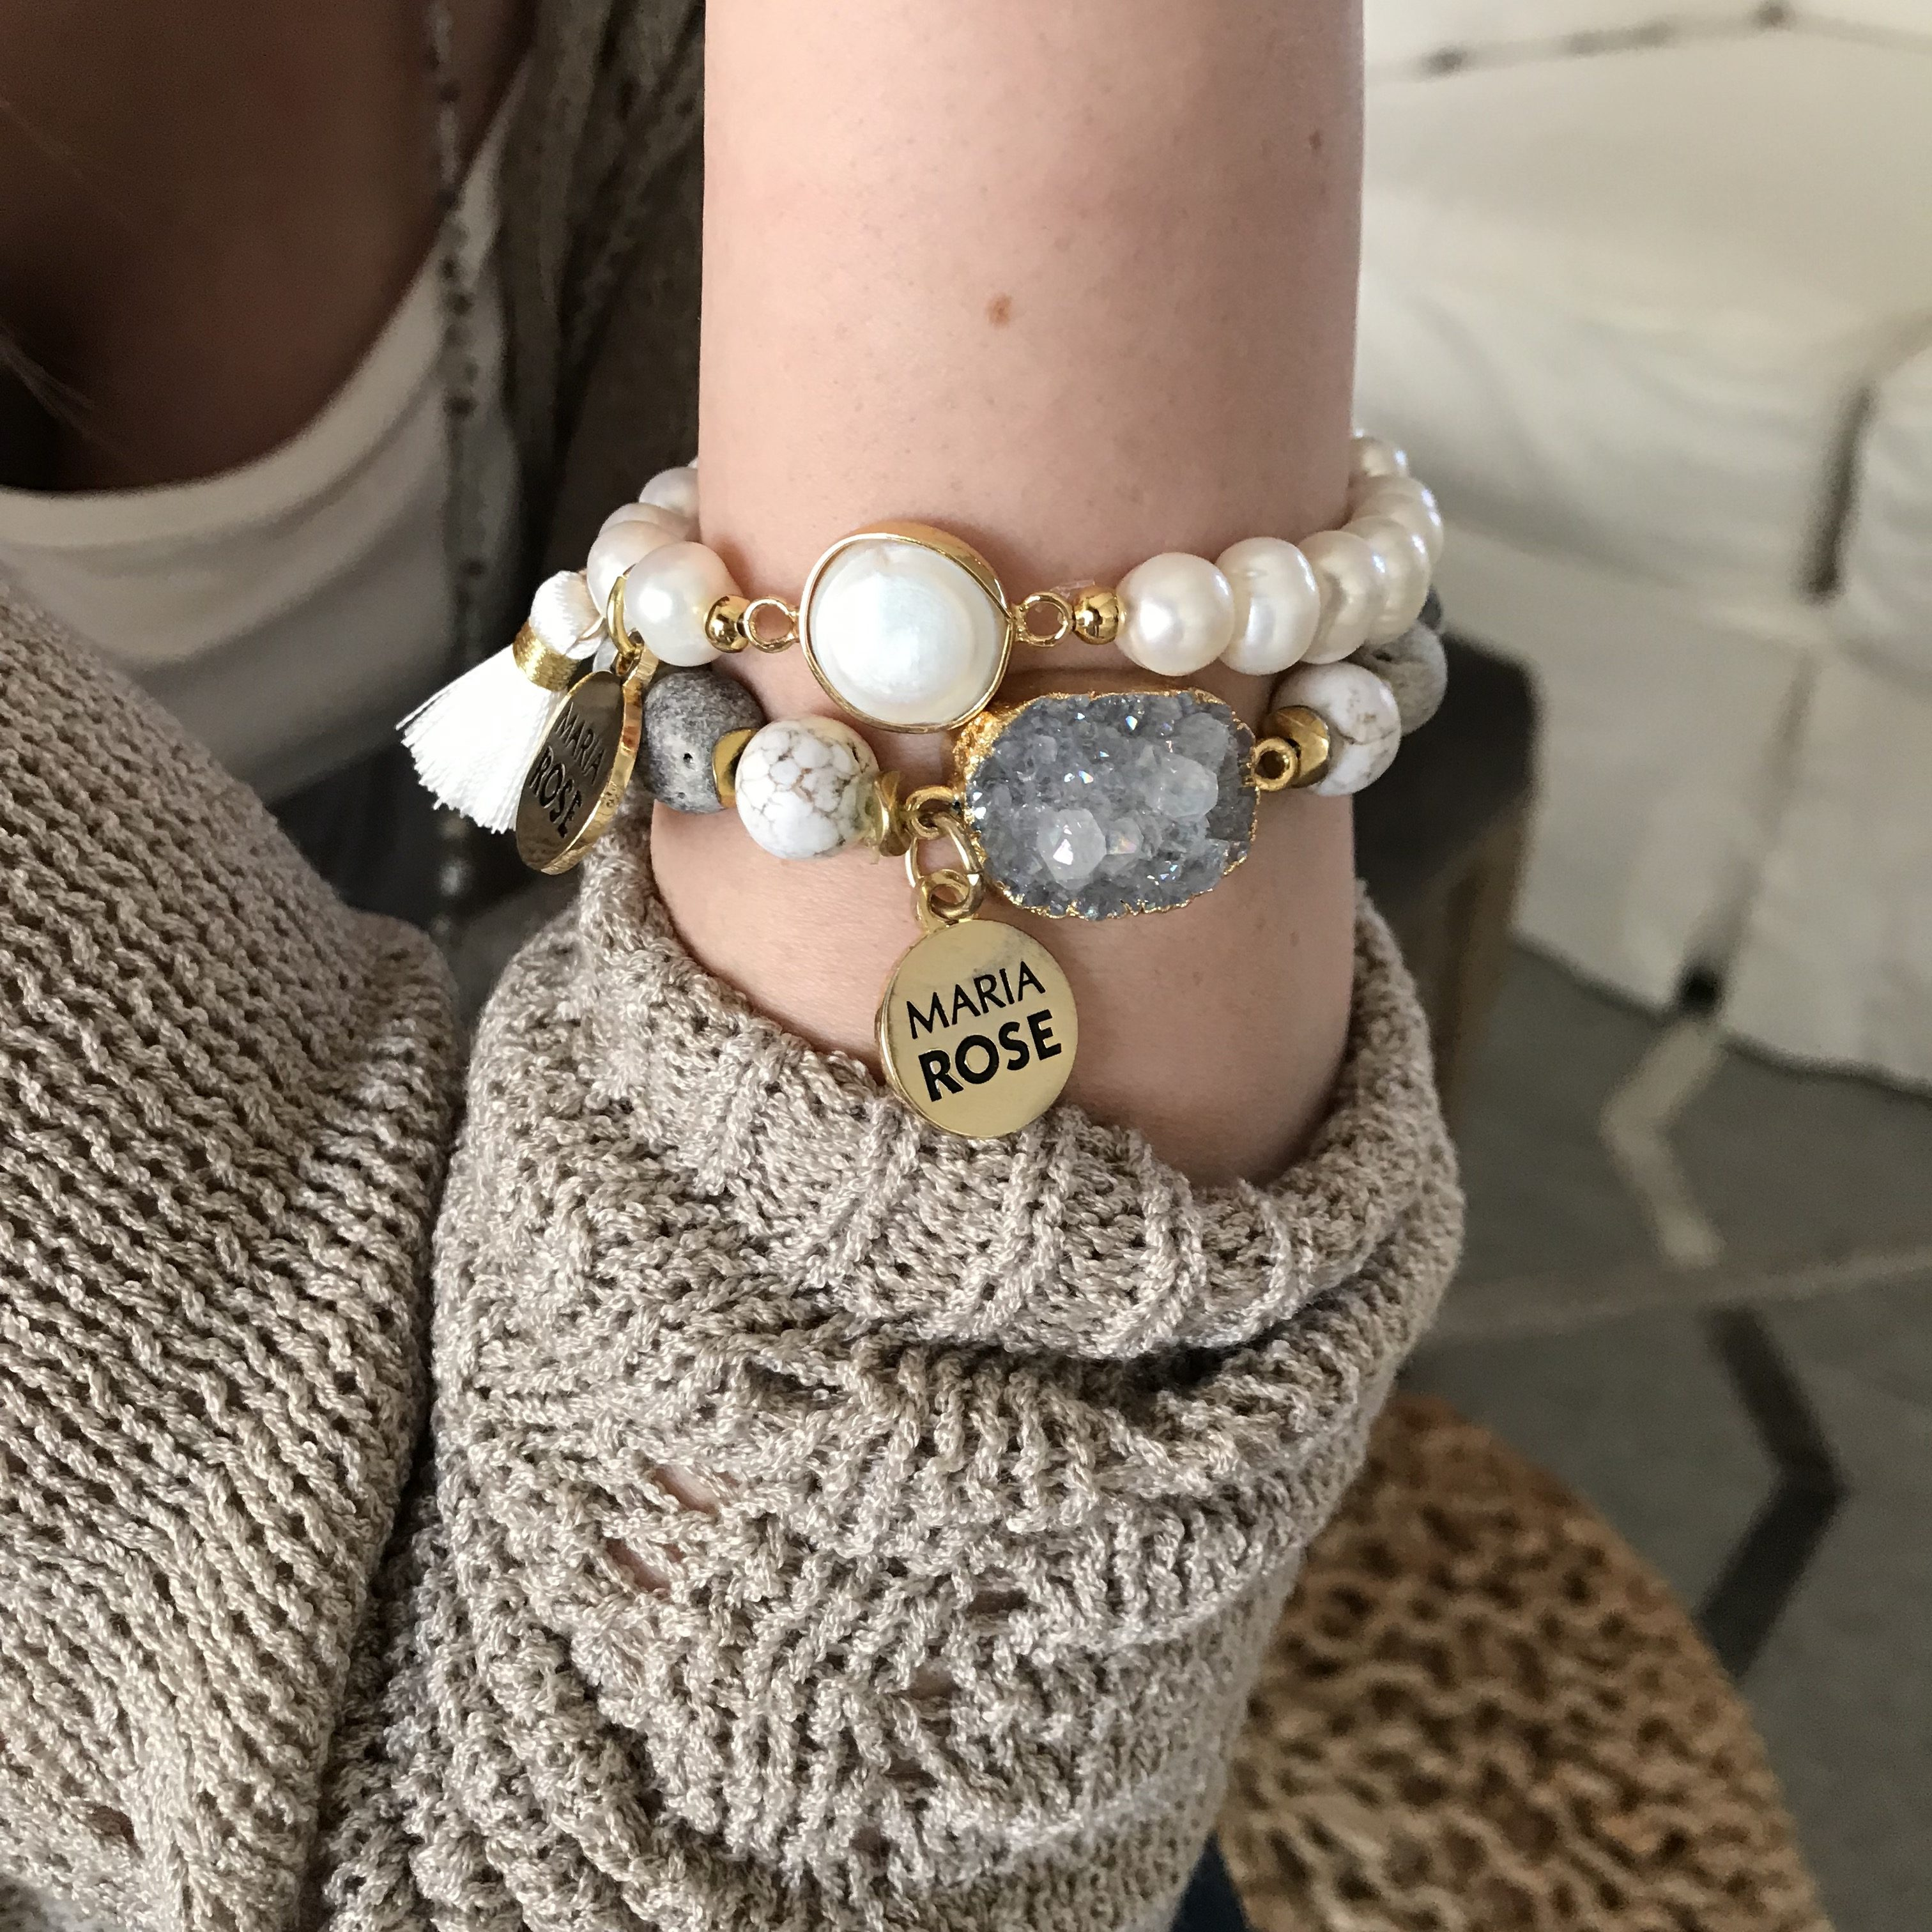 druzy bracelet with pearl bracelet stacked on female arm with gold Maria Rose charm